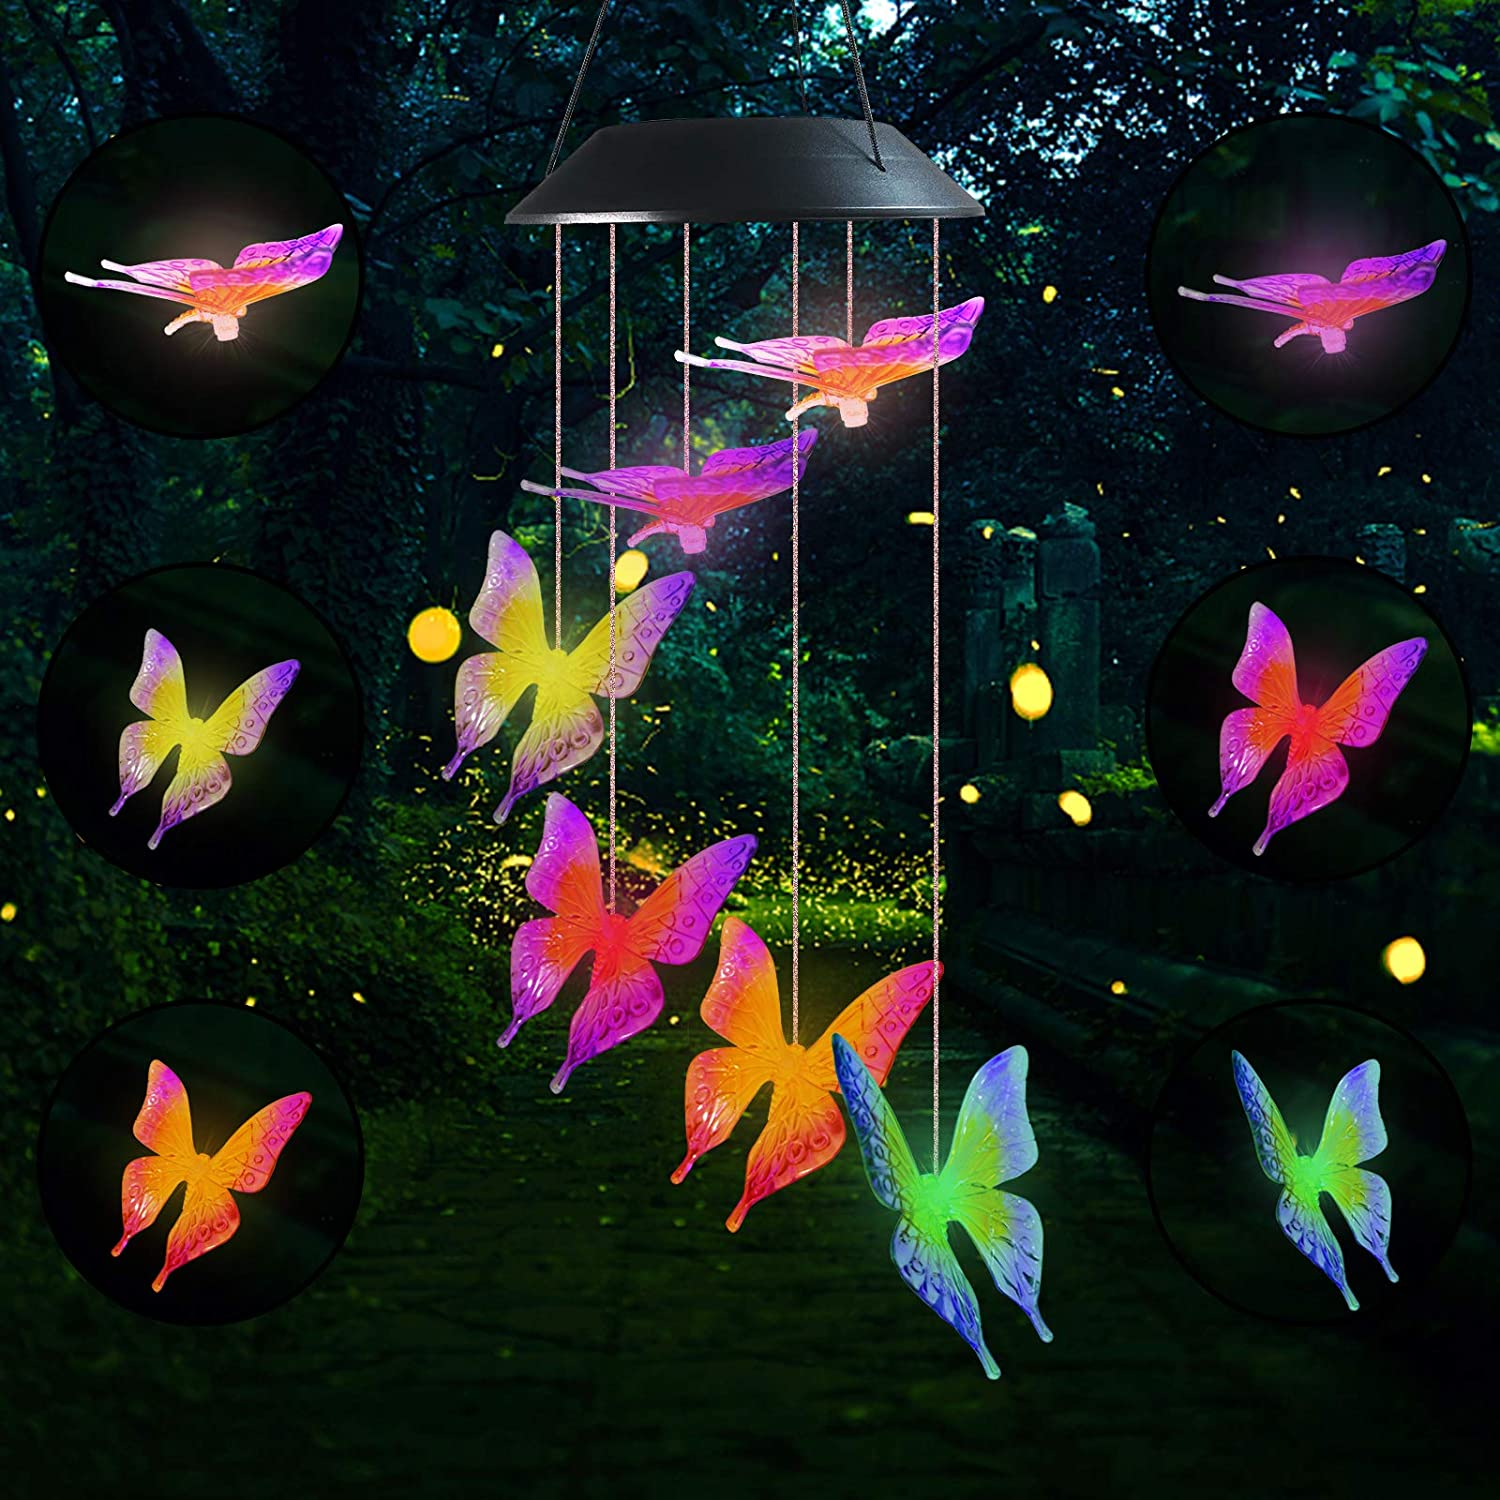 Famiry Solar Butterfly Wind Chimes for Outside, Wind Chimes Colors Changing Six Butterfly Waterproof LED Solar Light, Outdoor Decor for Garden, Patio, Yard, Home(Purple Yellow Butterfly)